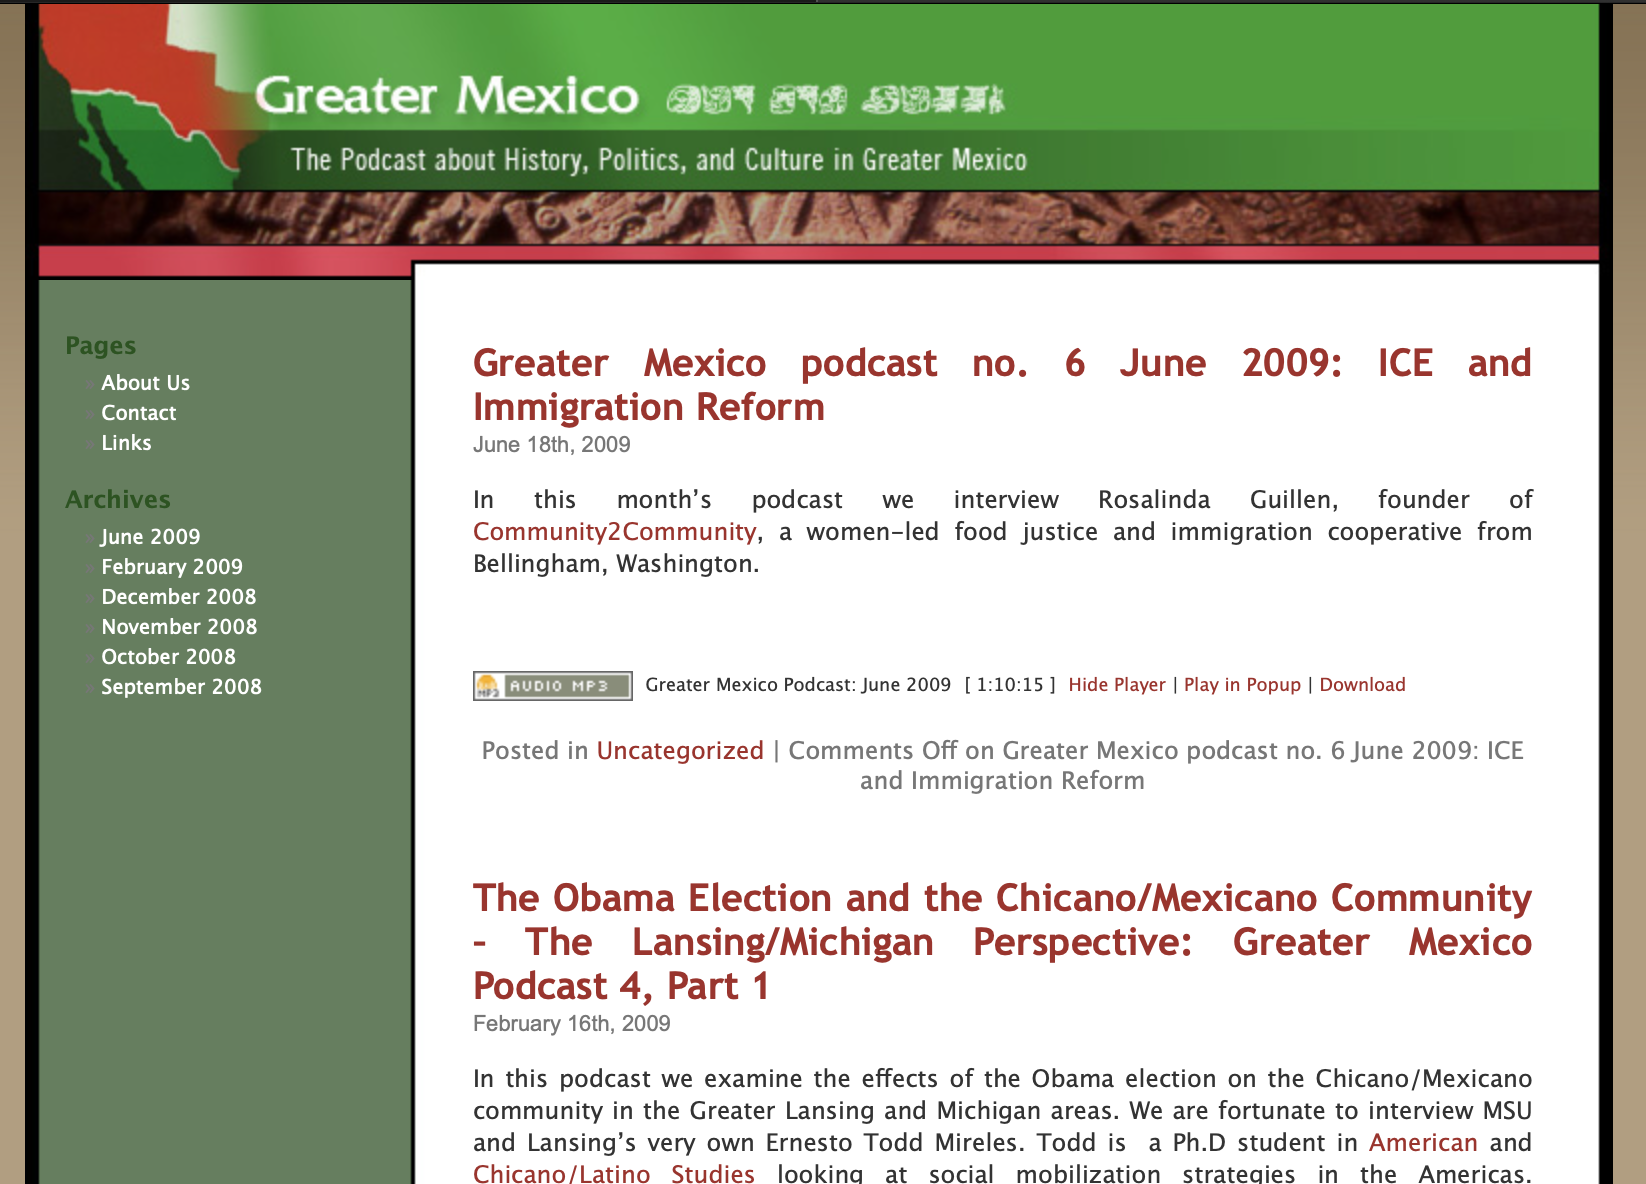 Greater Mexico Podcast